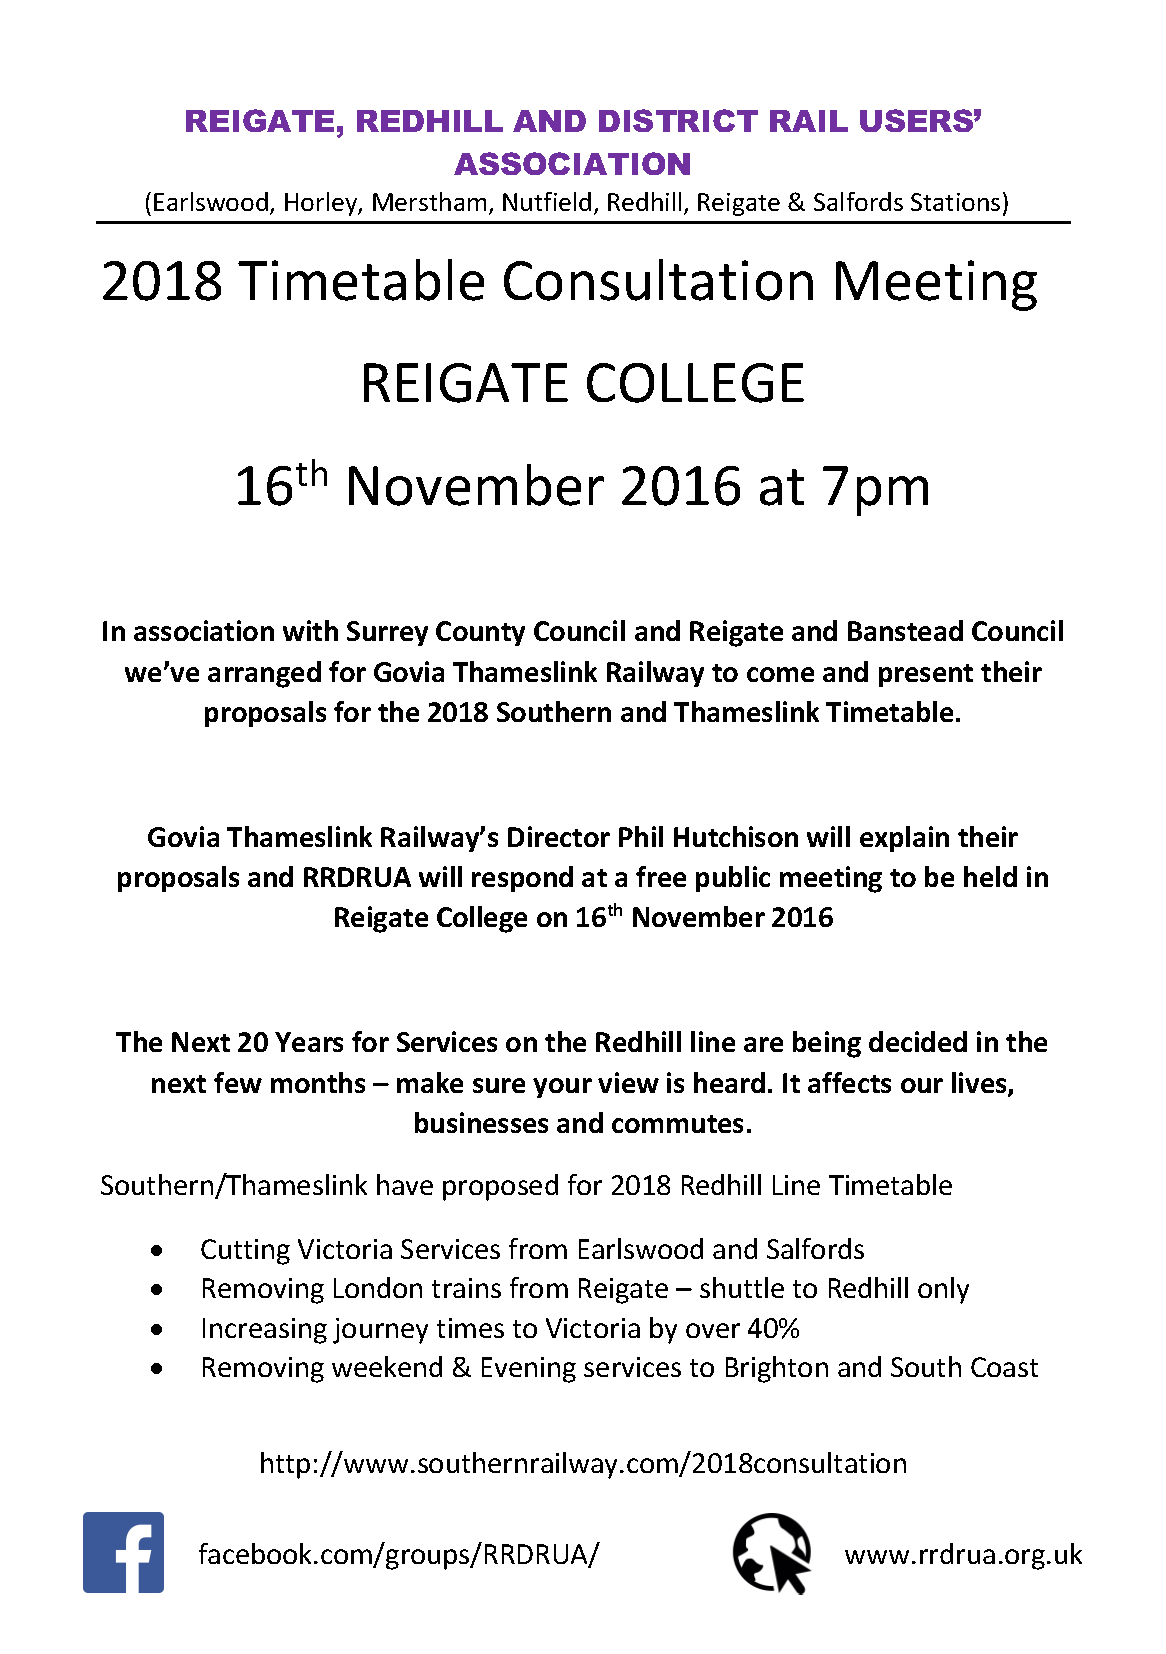 Timetable Consultation meeting